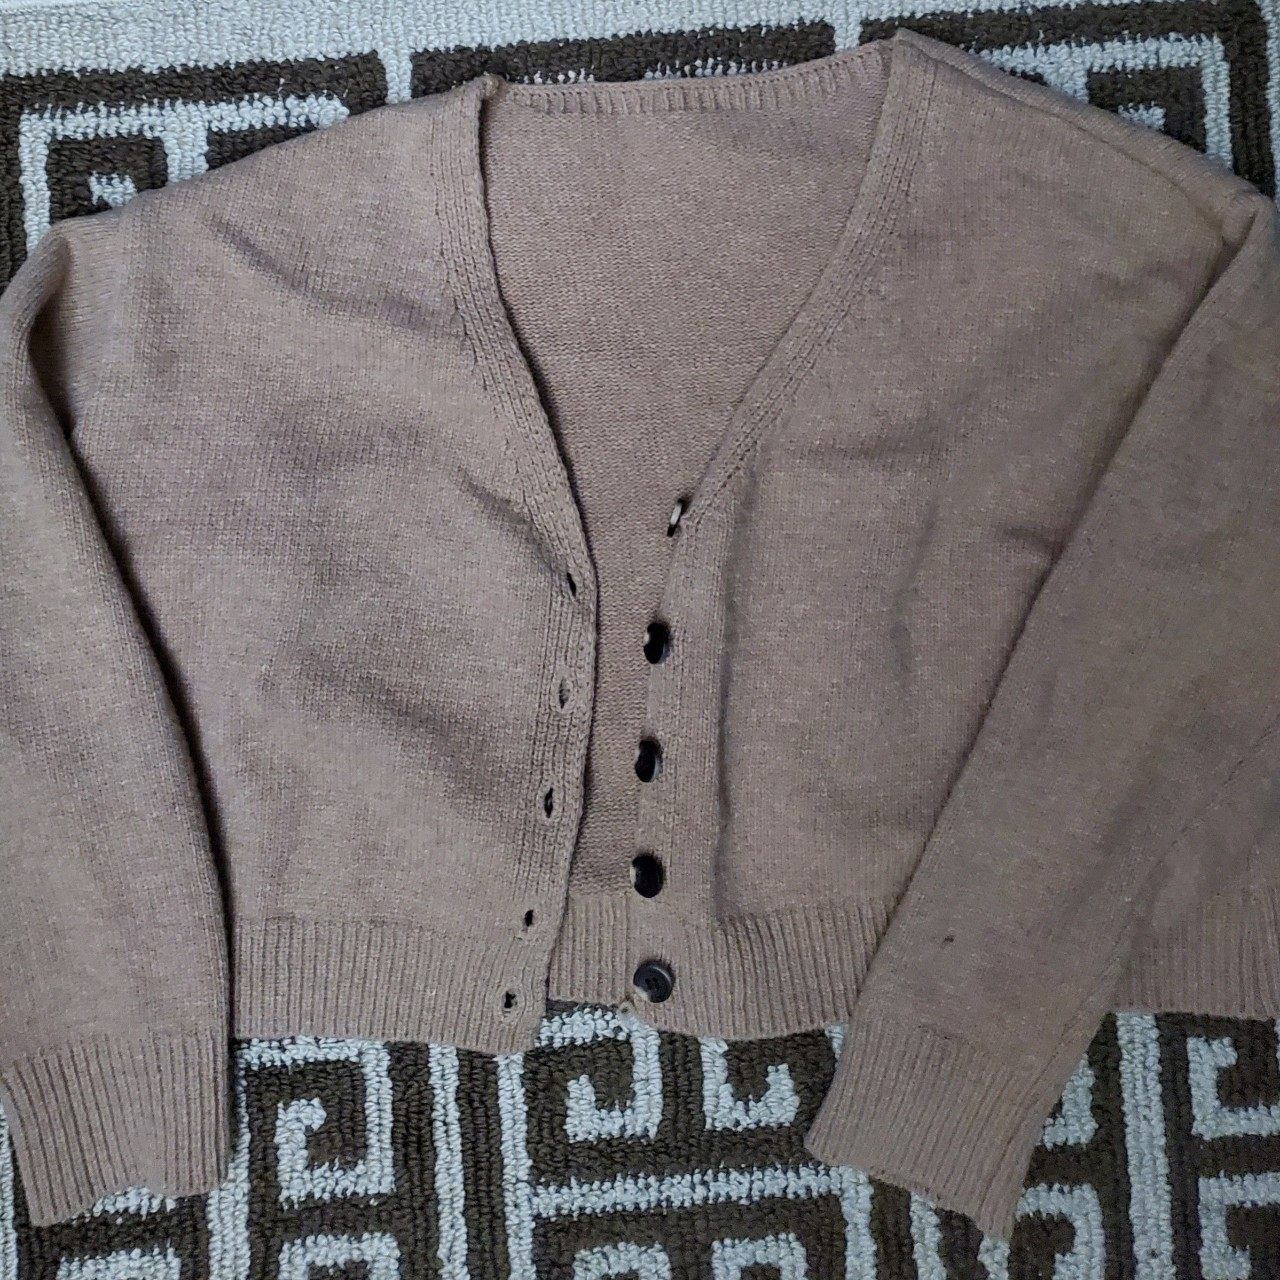 Product Image 1 - Brown cardigan. Buttons are functional